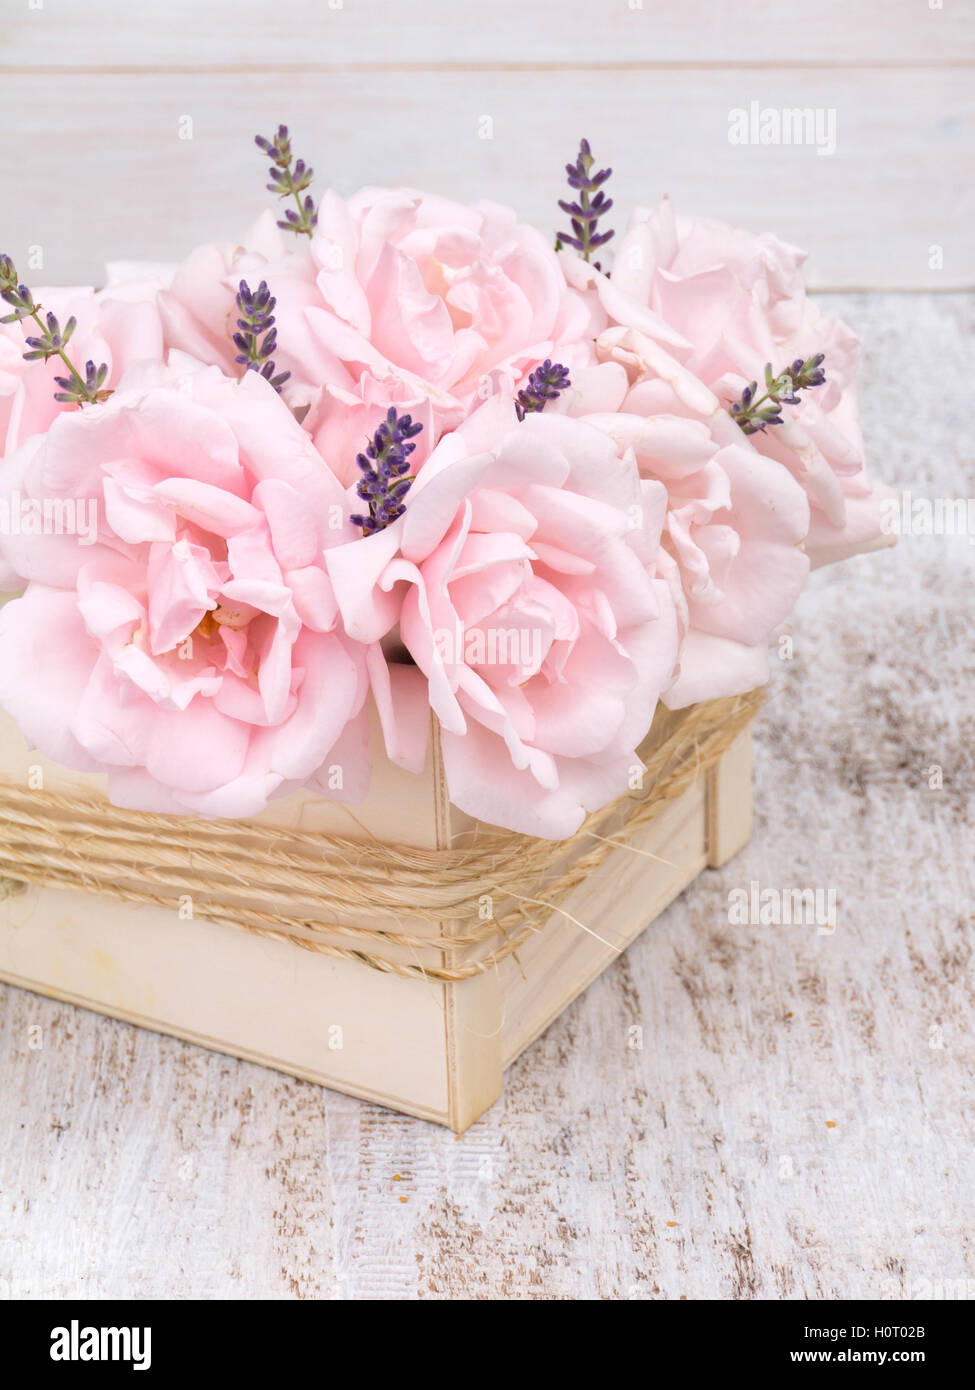 Pale Pink Roses And Lavender Bouquet In The Wooden Box Tied With